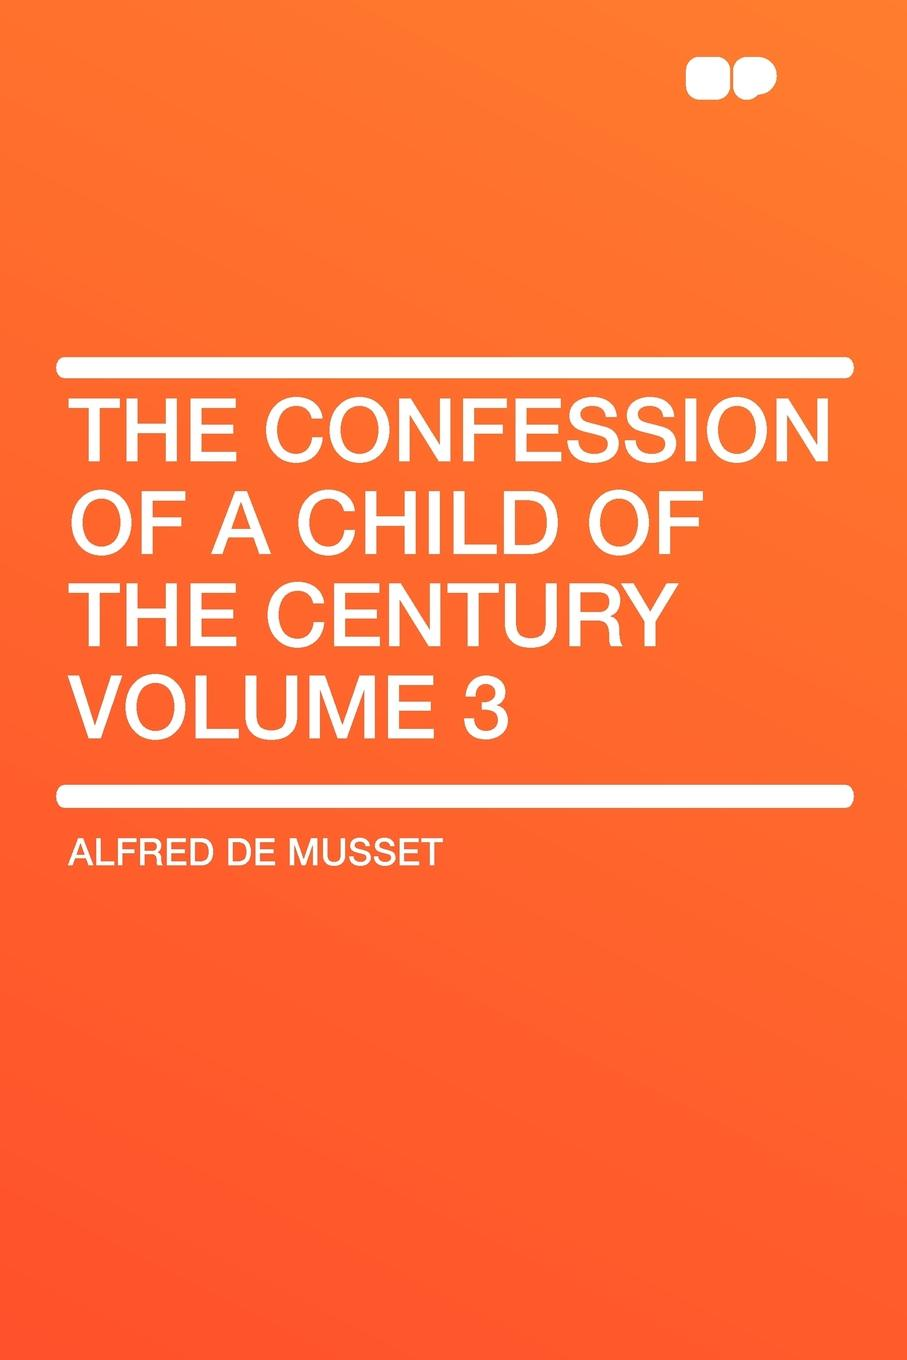 лучшая цена Alfred de Musset The Confession of a Child of the Century Volume 3